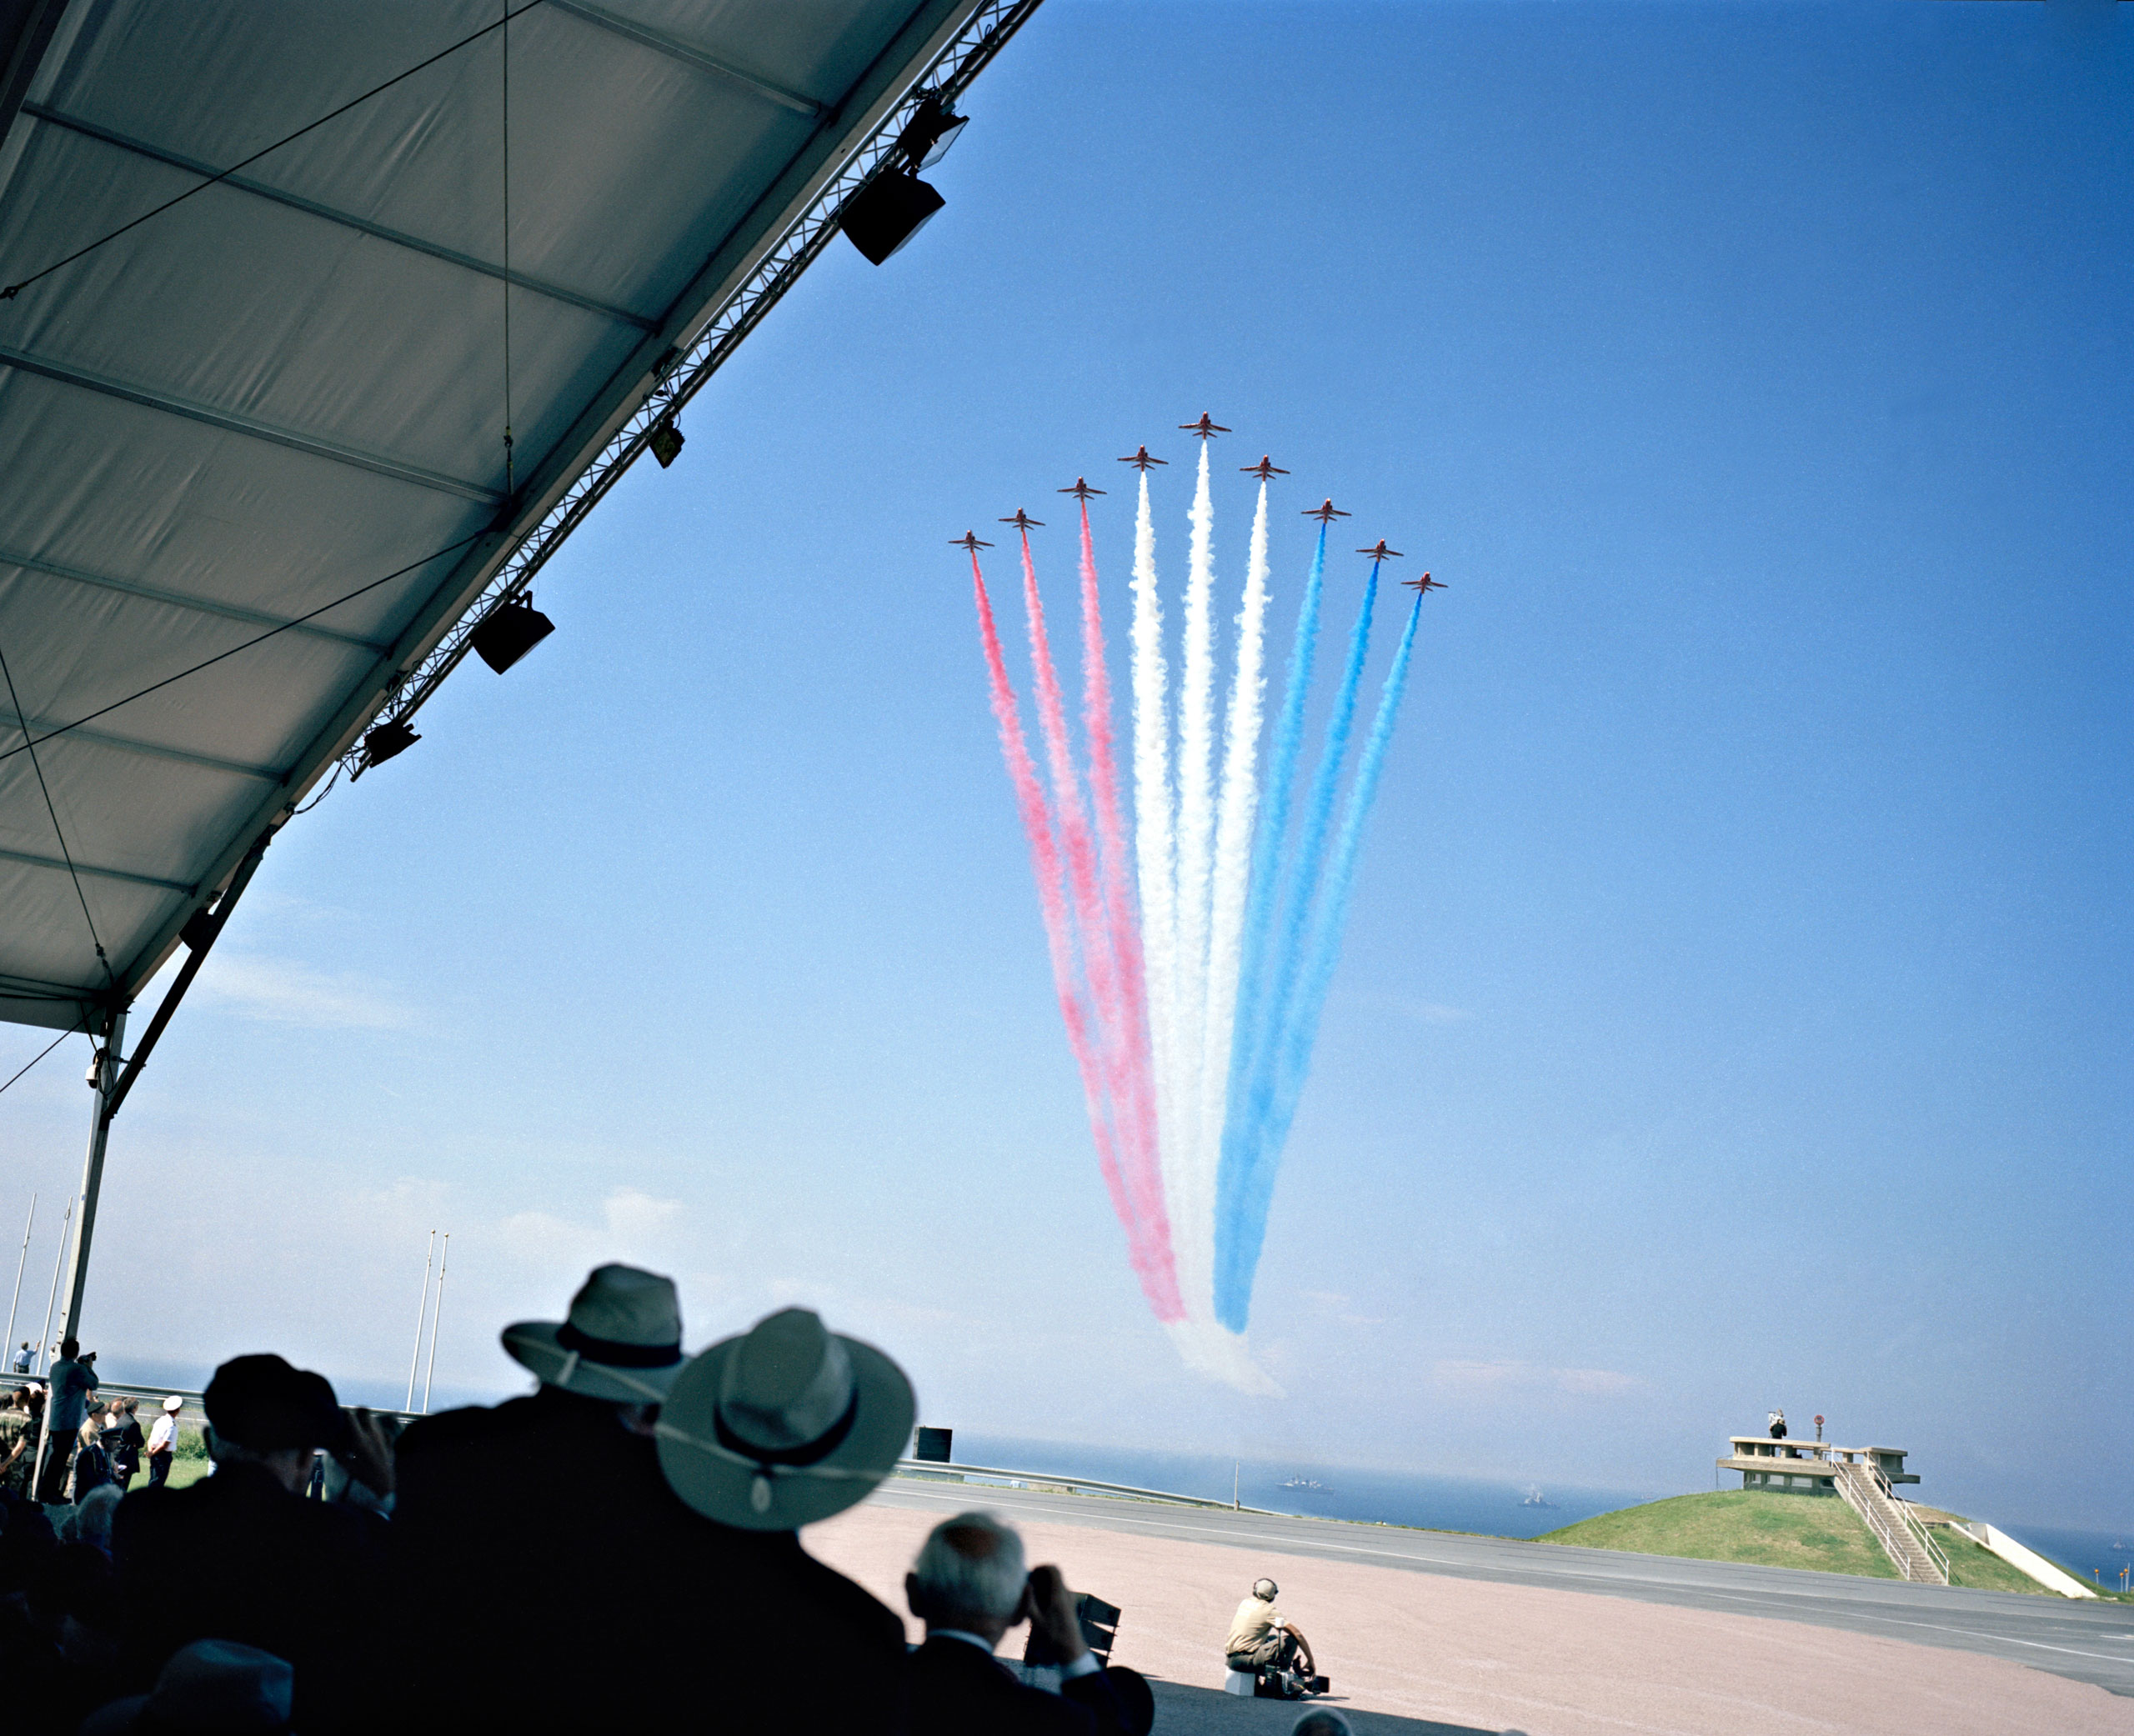 Normandy, 60th anniversary of D-Day, 2004French stunt pilots draw the colors of the french flag at the commemoration ceremony in Arromanches.